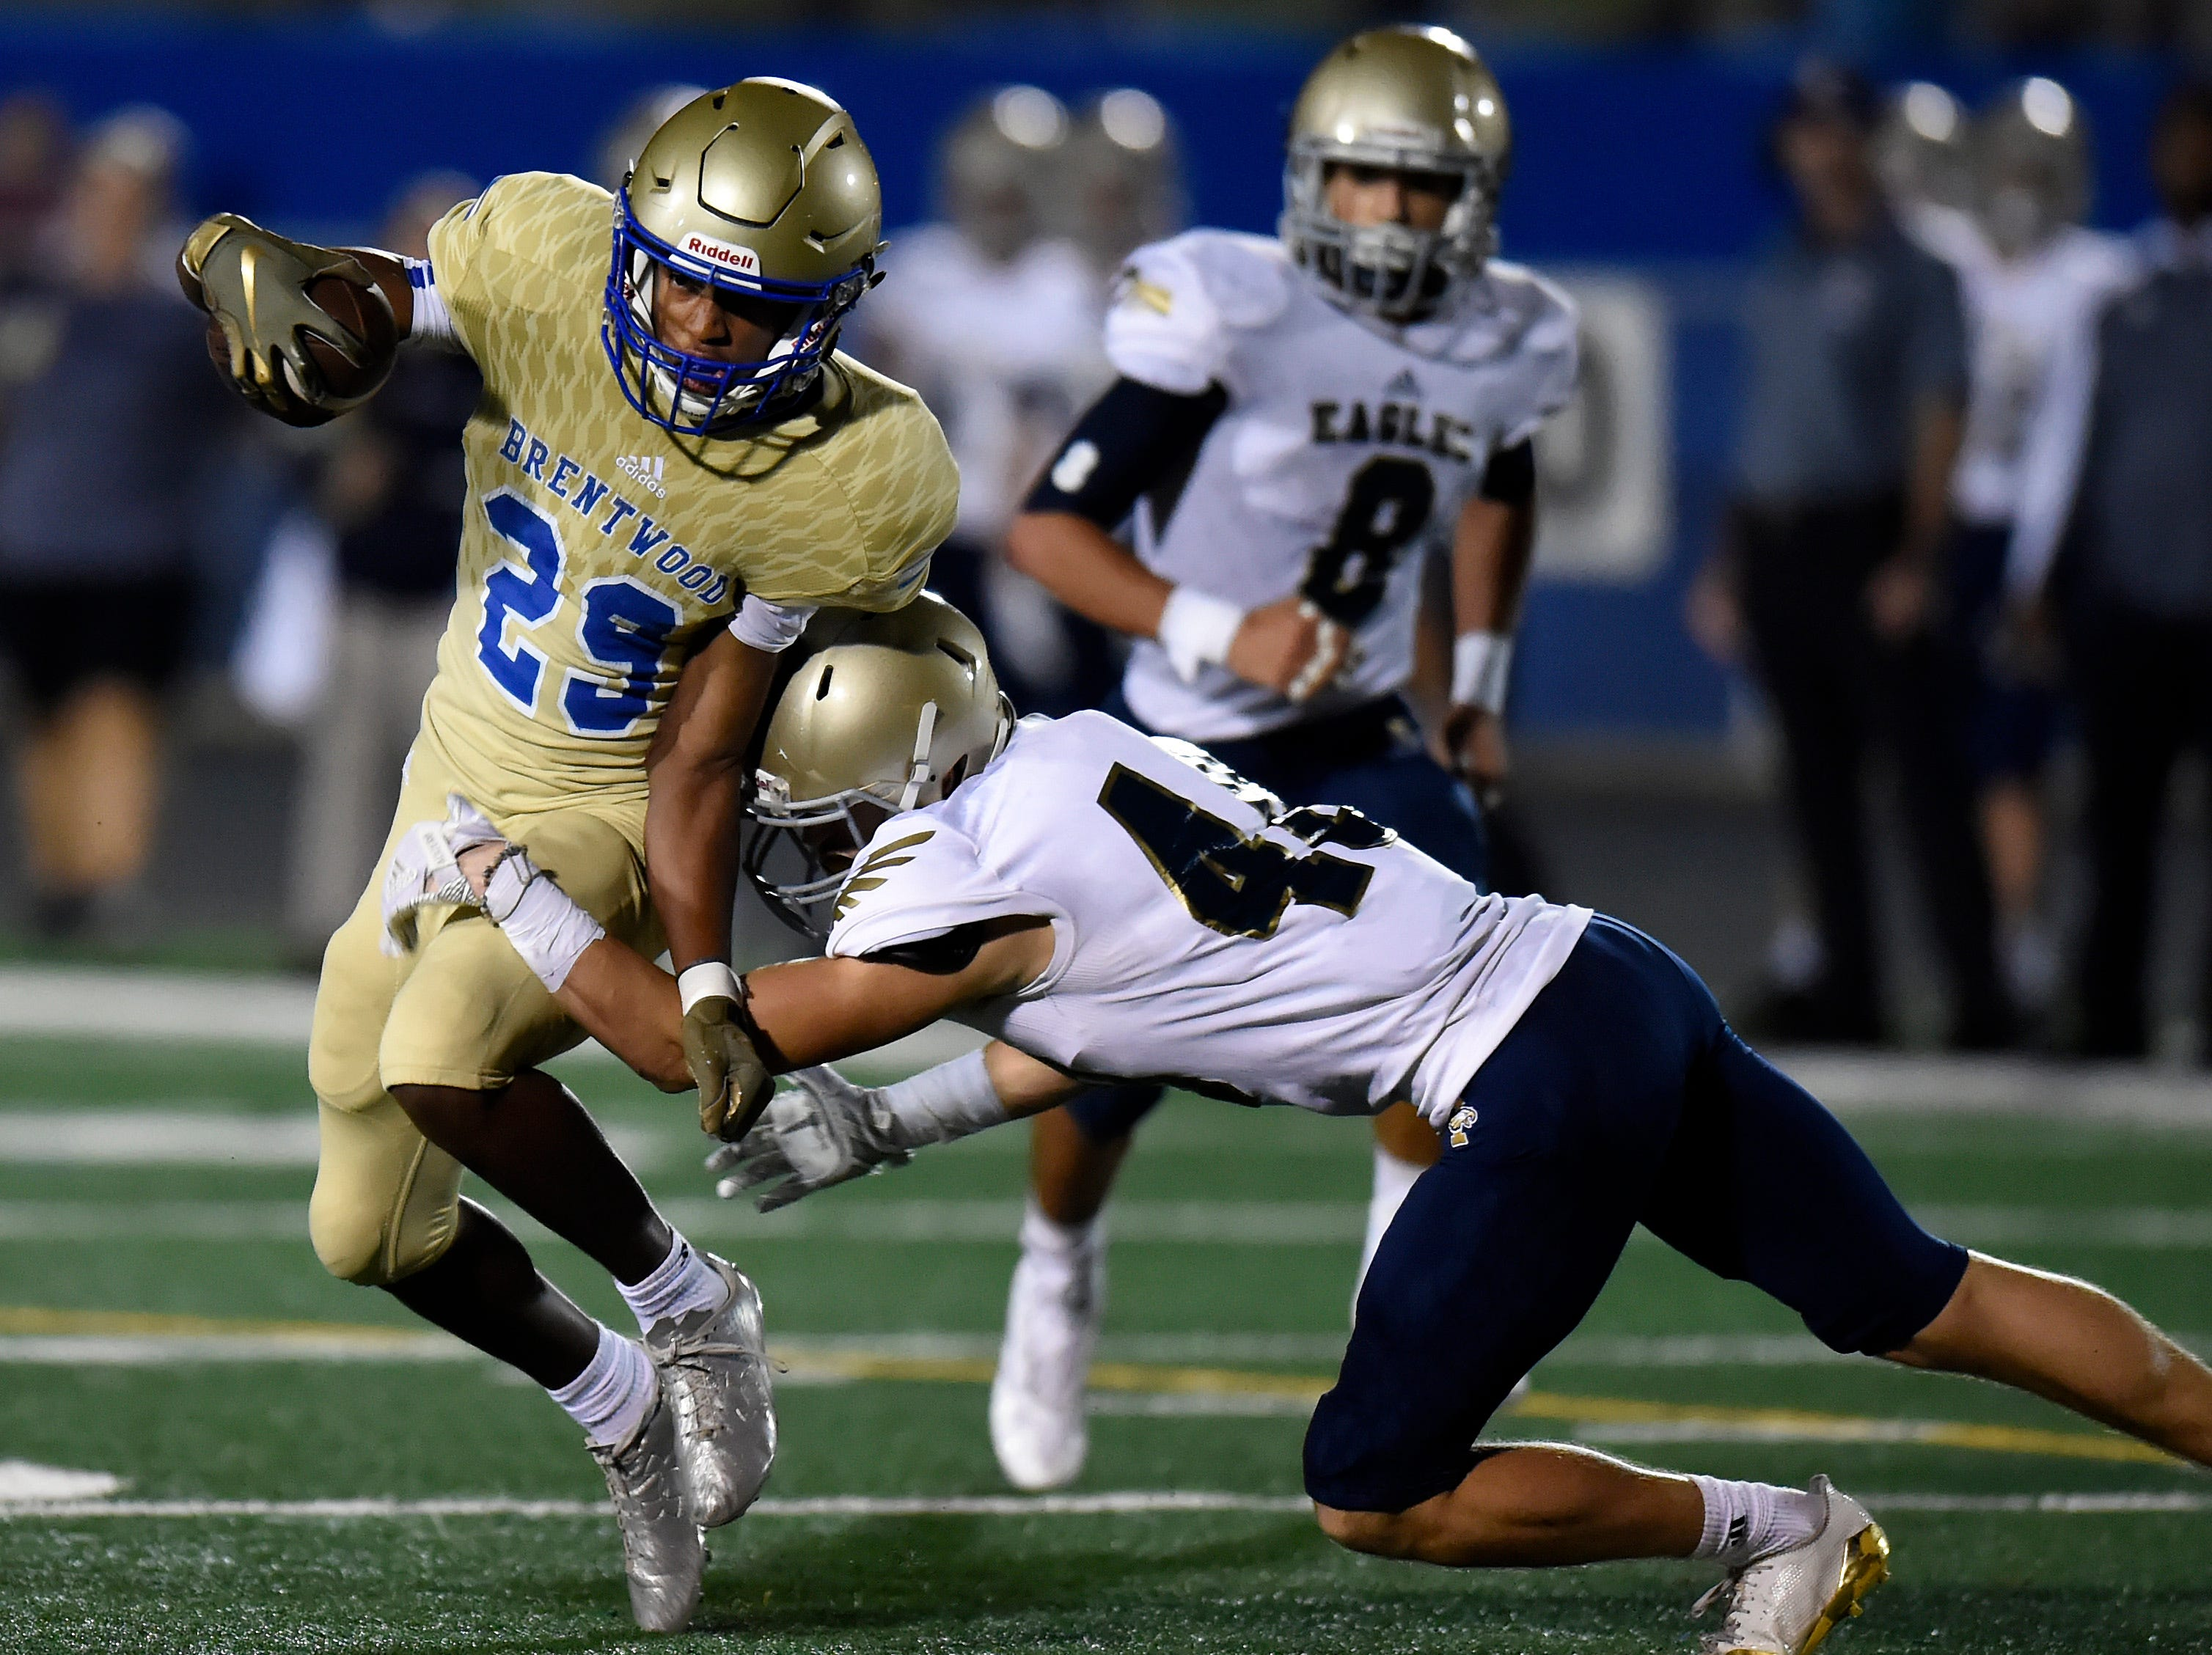 Brentwood running back Avery Williams (29) runs past Independence cornerback Brighan Morrical (40) during the second half of an high school football game Friday, September 28, 2018, in Brentwood, Tenn. Independence won 42-31.